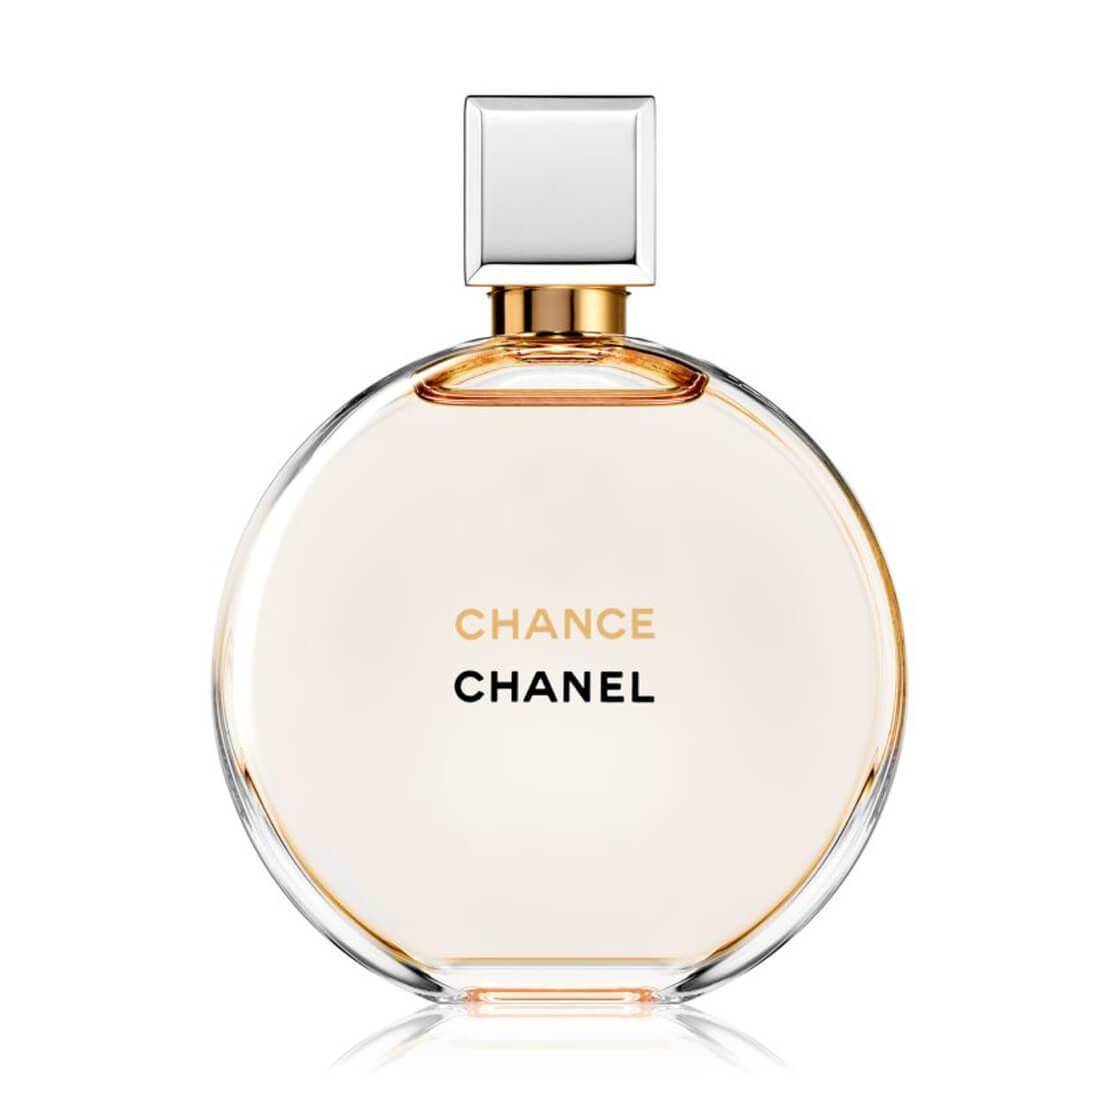 Chanel Chance Eau De Perfume For Women 100ml